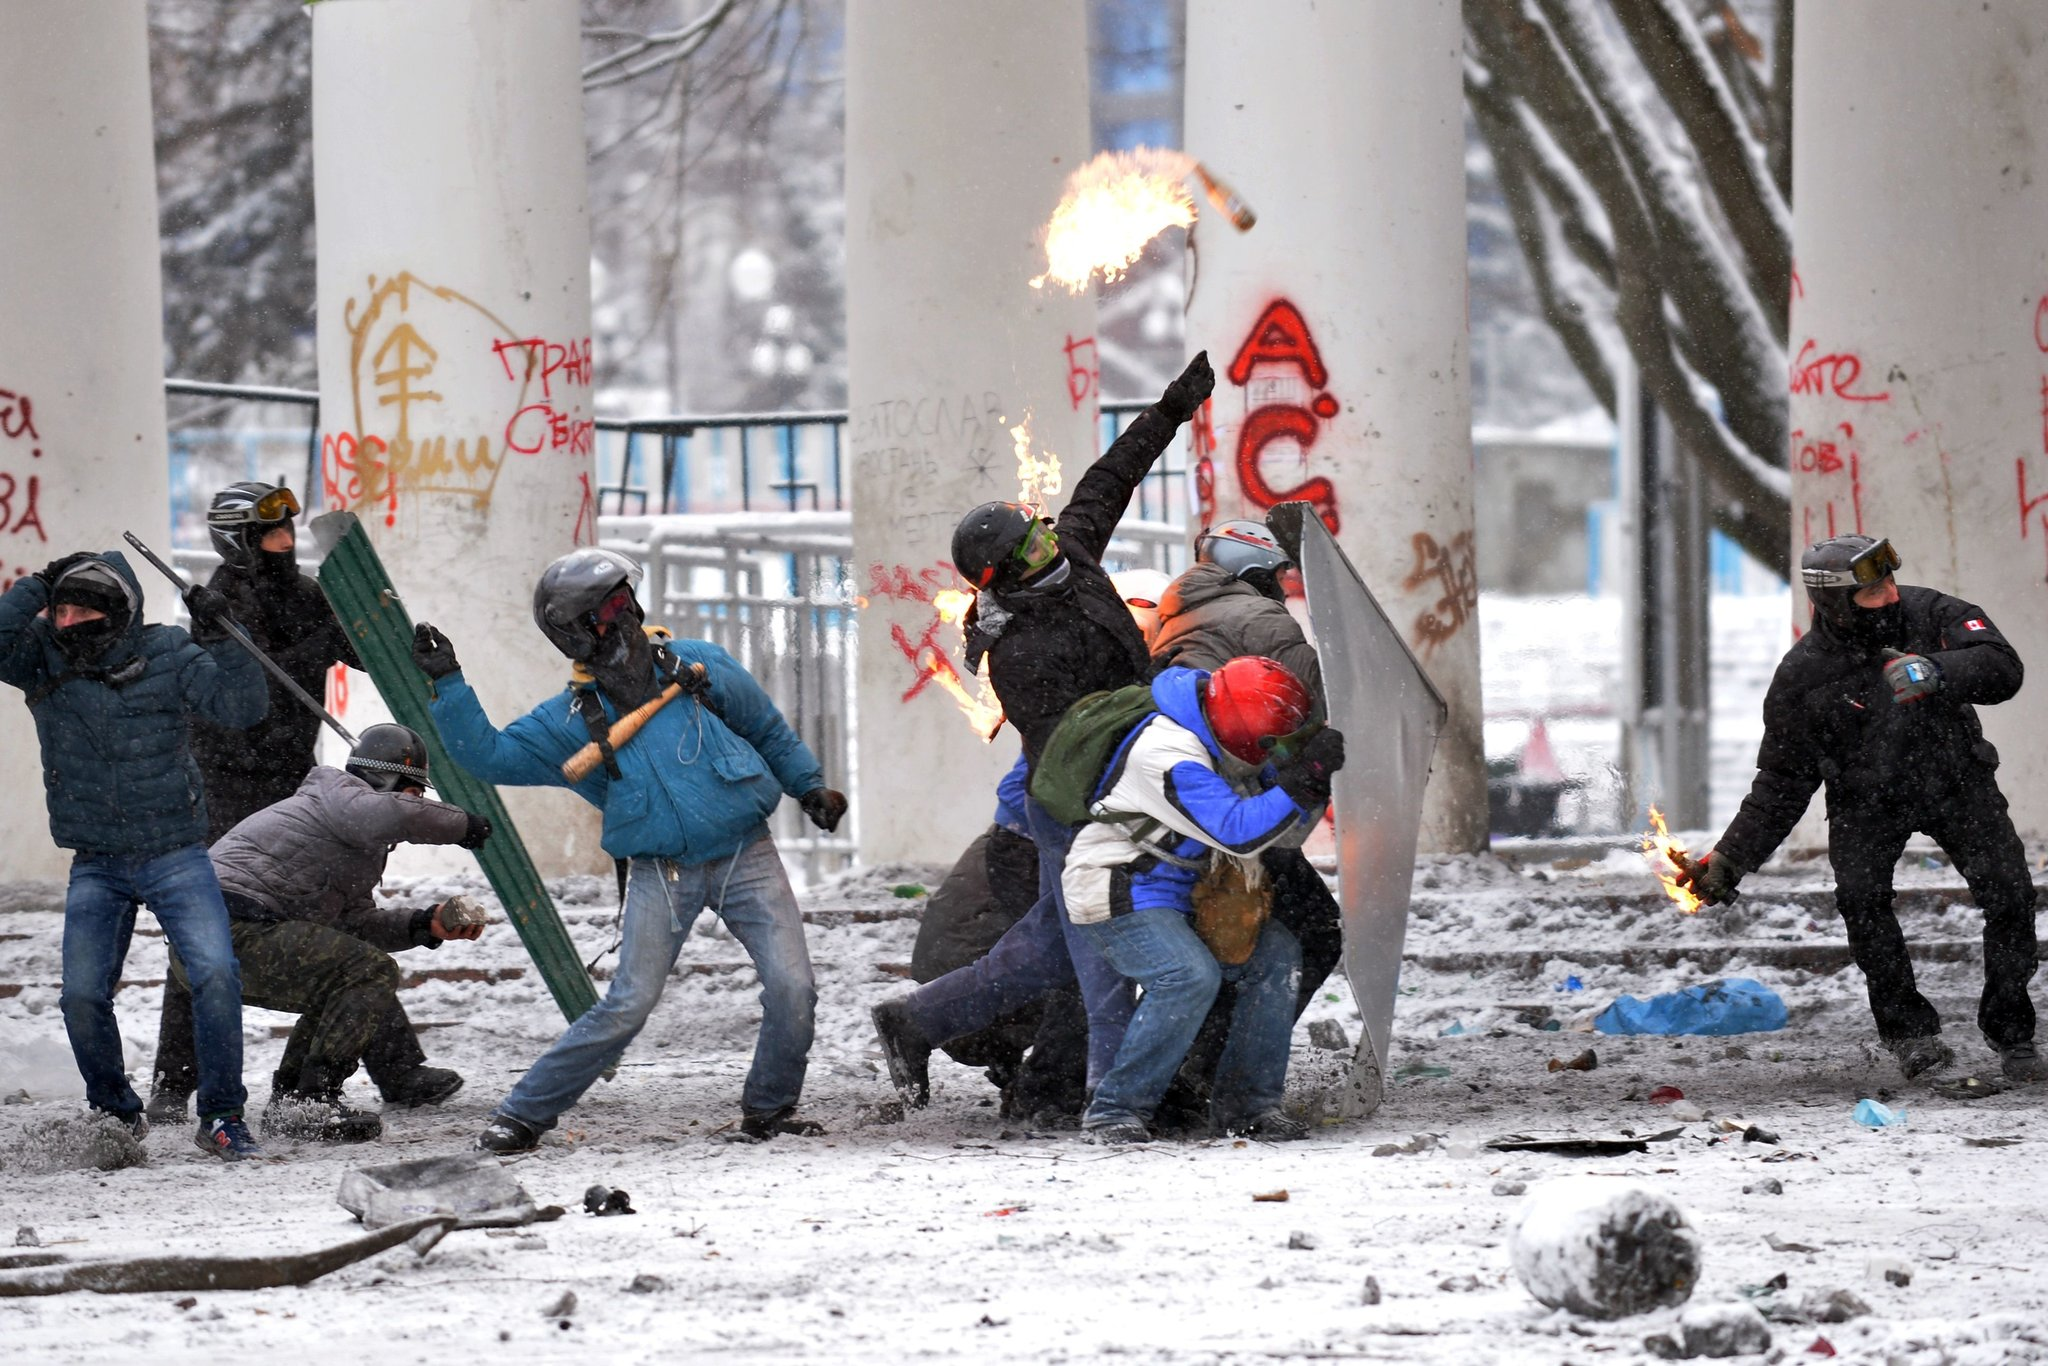 The fatalities are the first in Ukraine's two-month civil uprising.